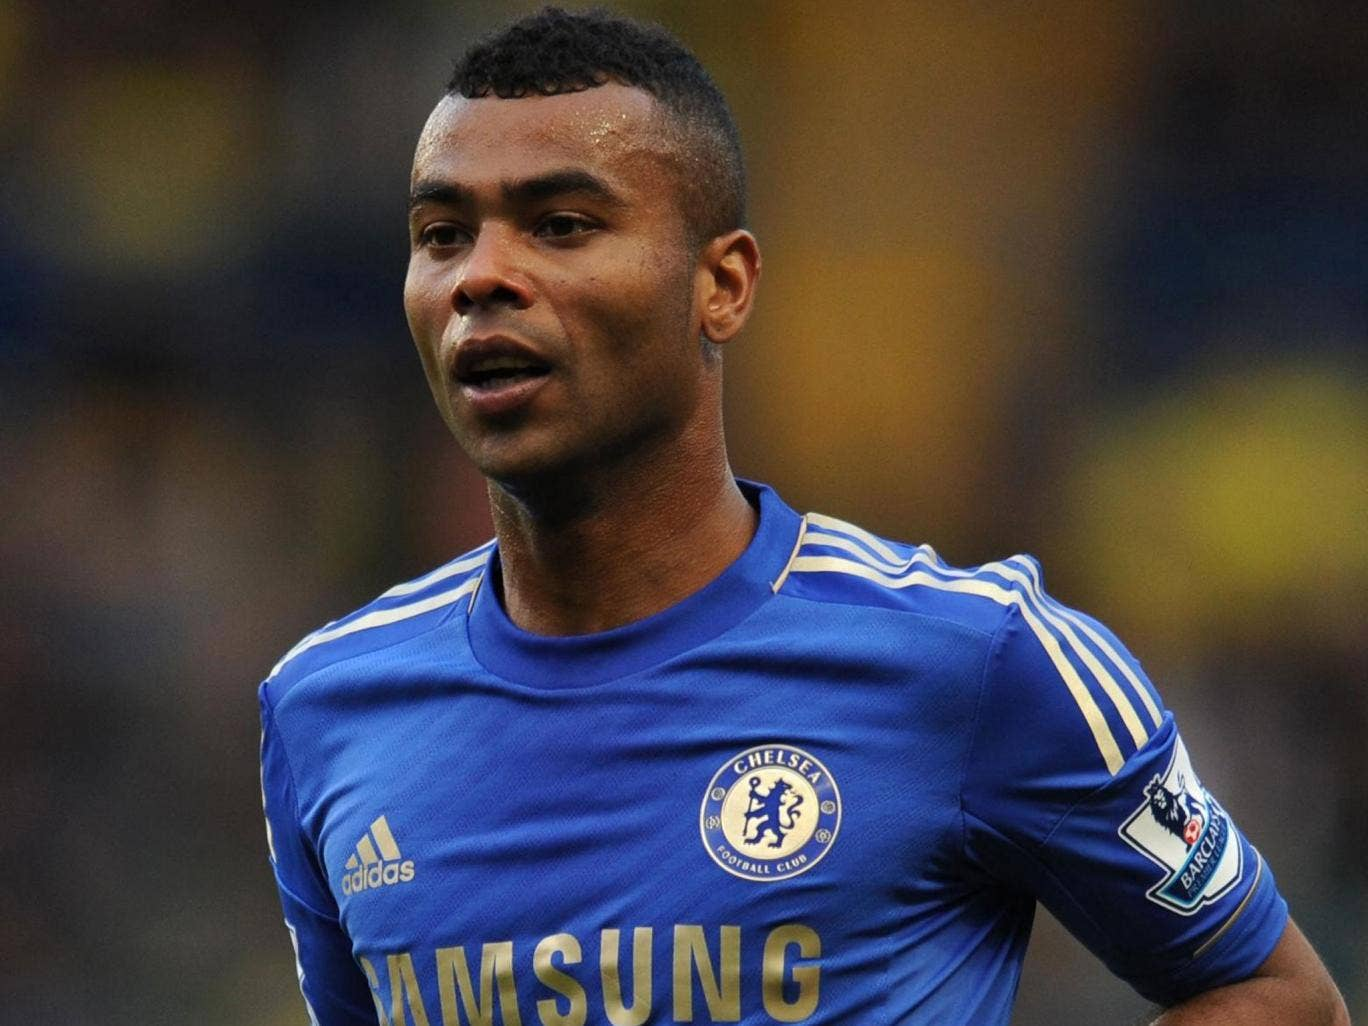 Ashley Cole has reportedly agreed to sign a new contract with Chelsea